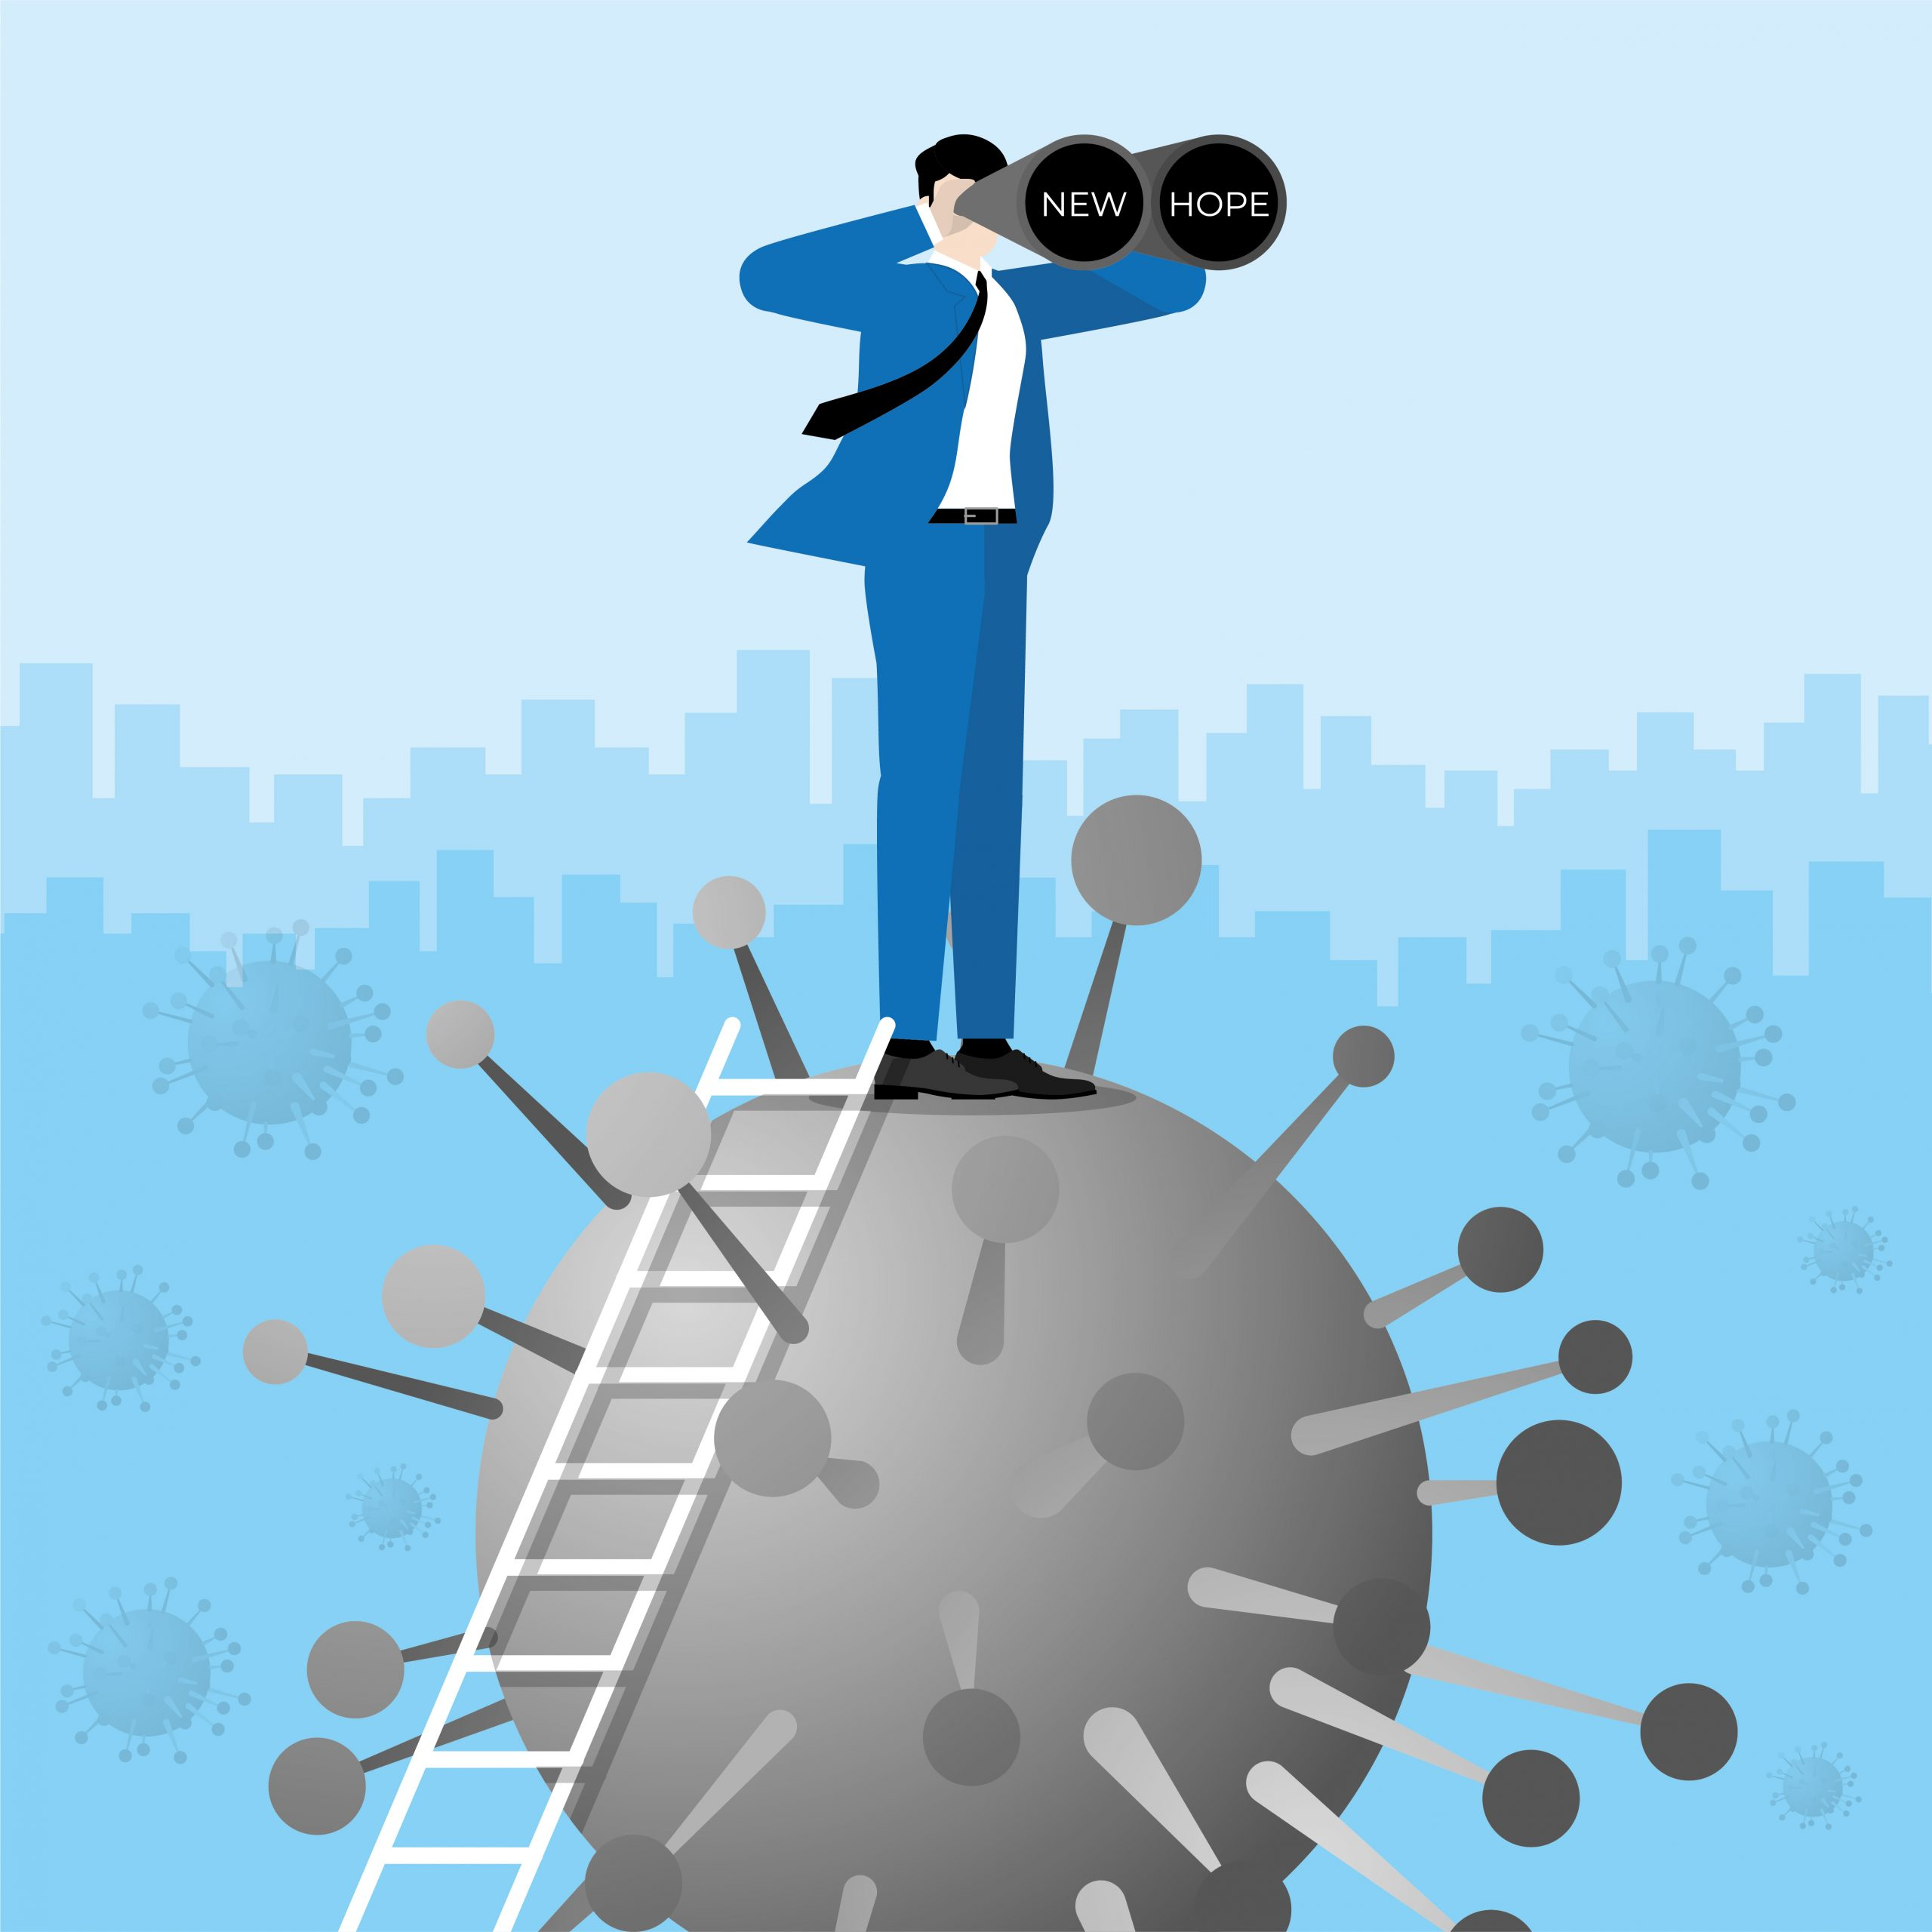 Business Vision concept. Businessman climb up the ladder standing over the virus COVID-19 coronavirus. Using binoculars for searching a new hope opportunity. Vector Illustration flat style.